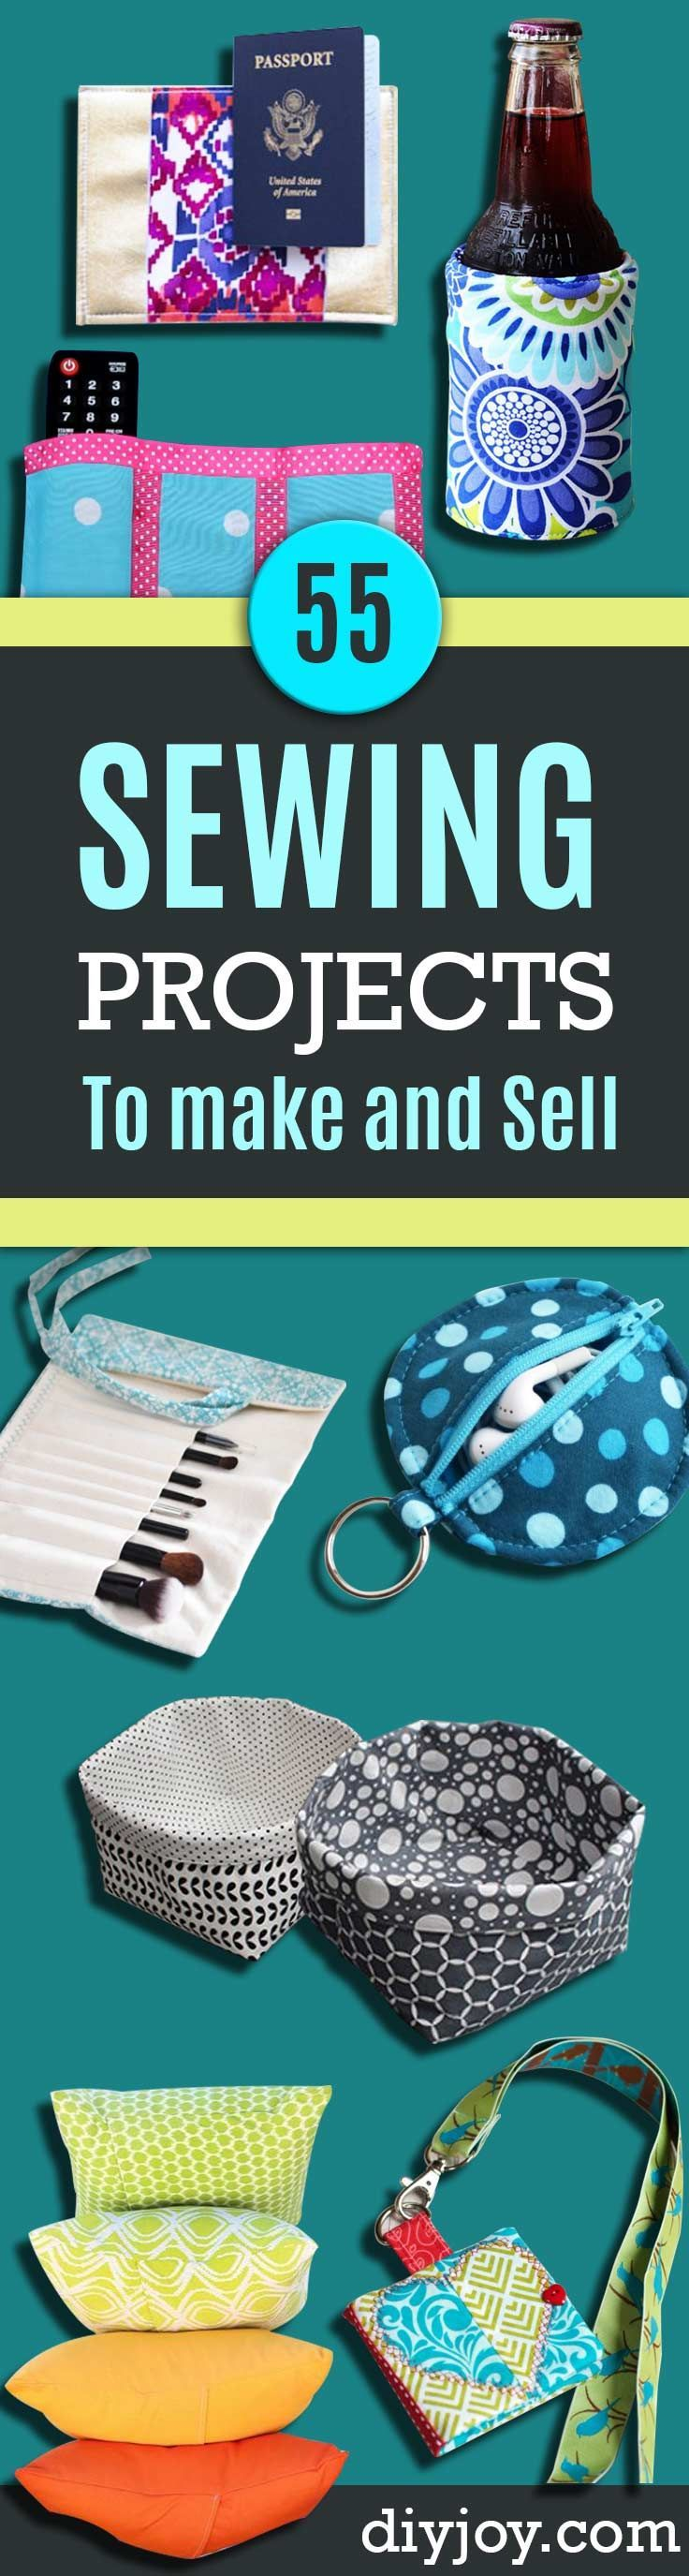 55 sewing projects to make and sell patterns tutorials